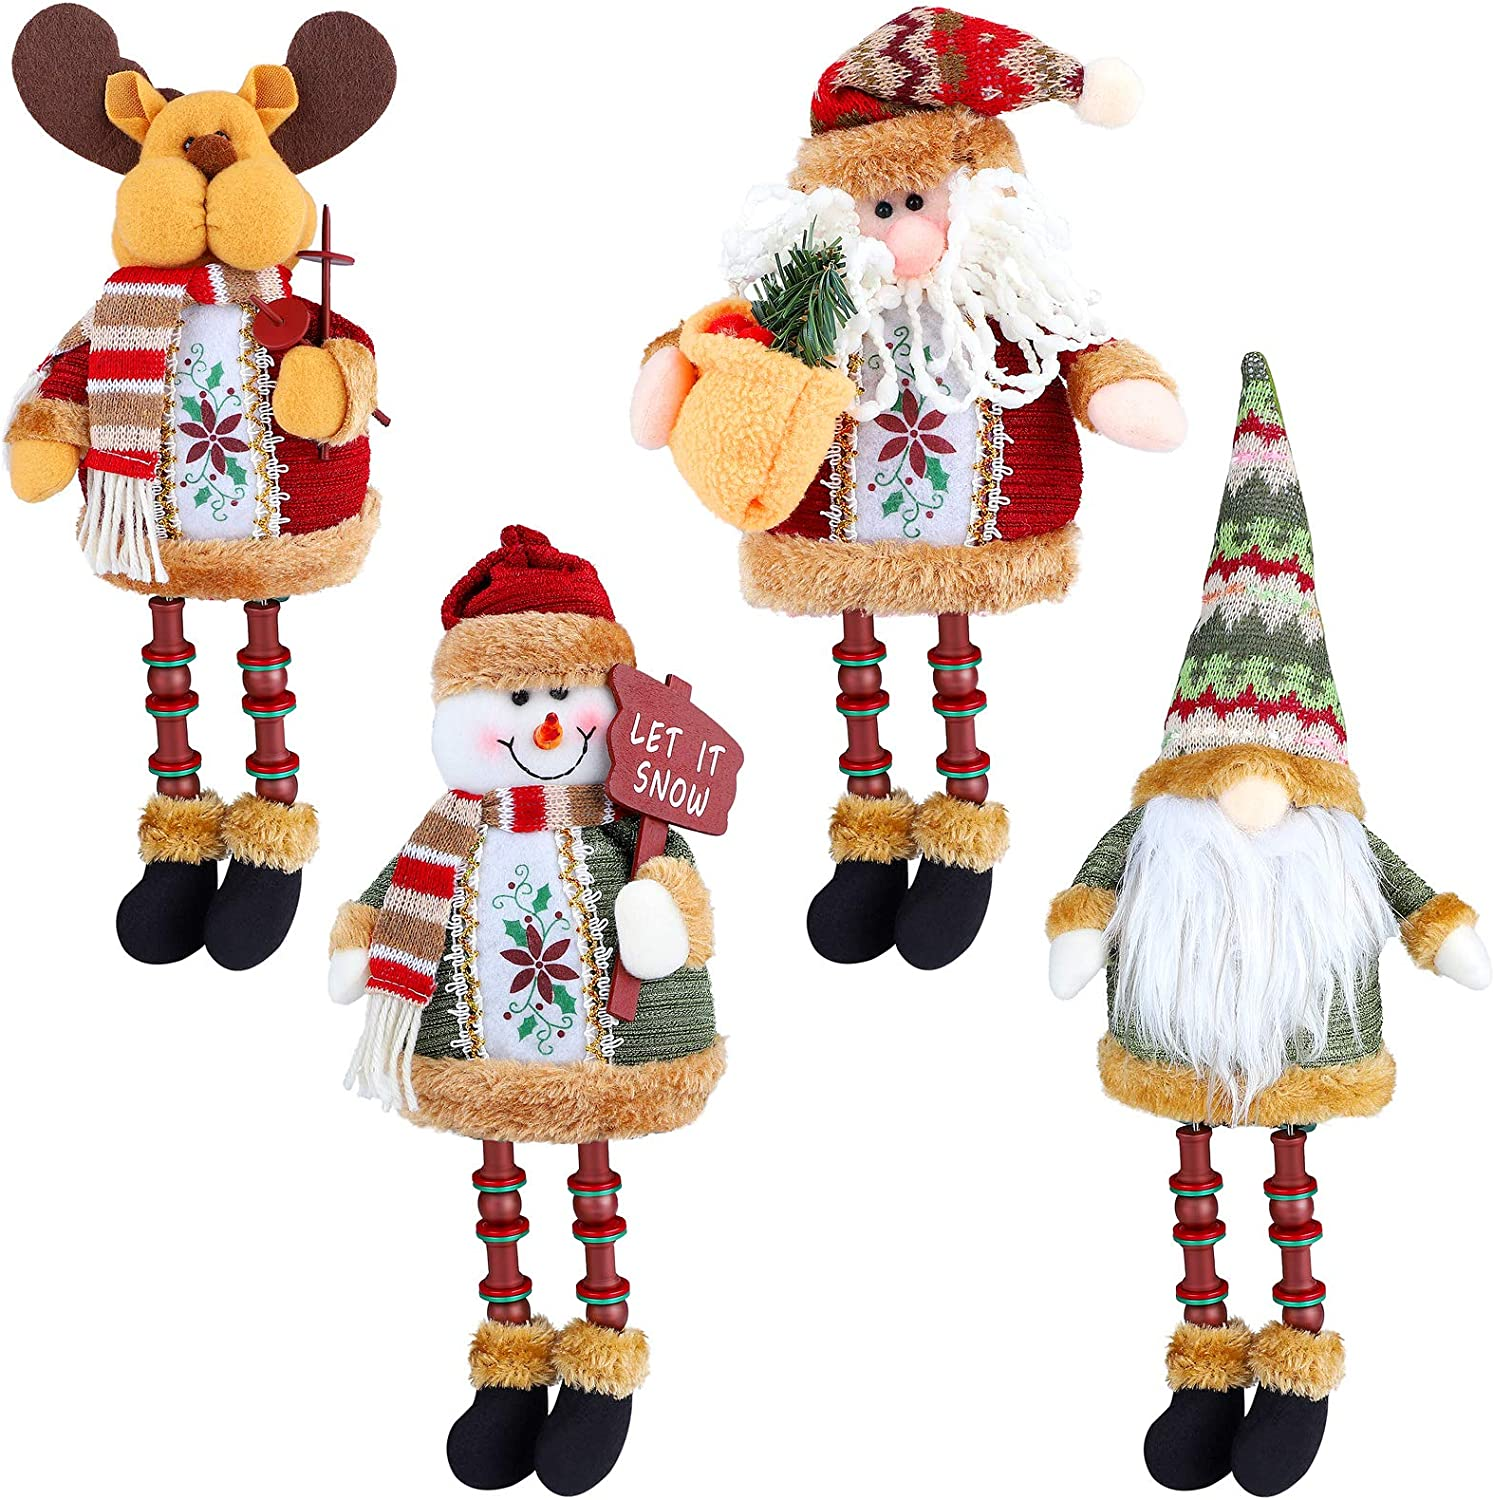 RUODON 4 Pack Christmas Long Legs Table Decoration Handmade Sitting Ornament Winter Sitting Hanging Table Fireplace Decor Decorations